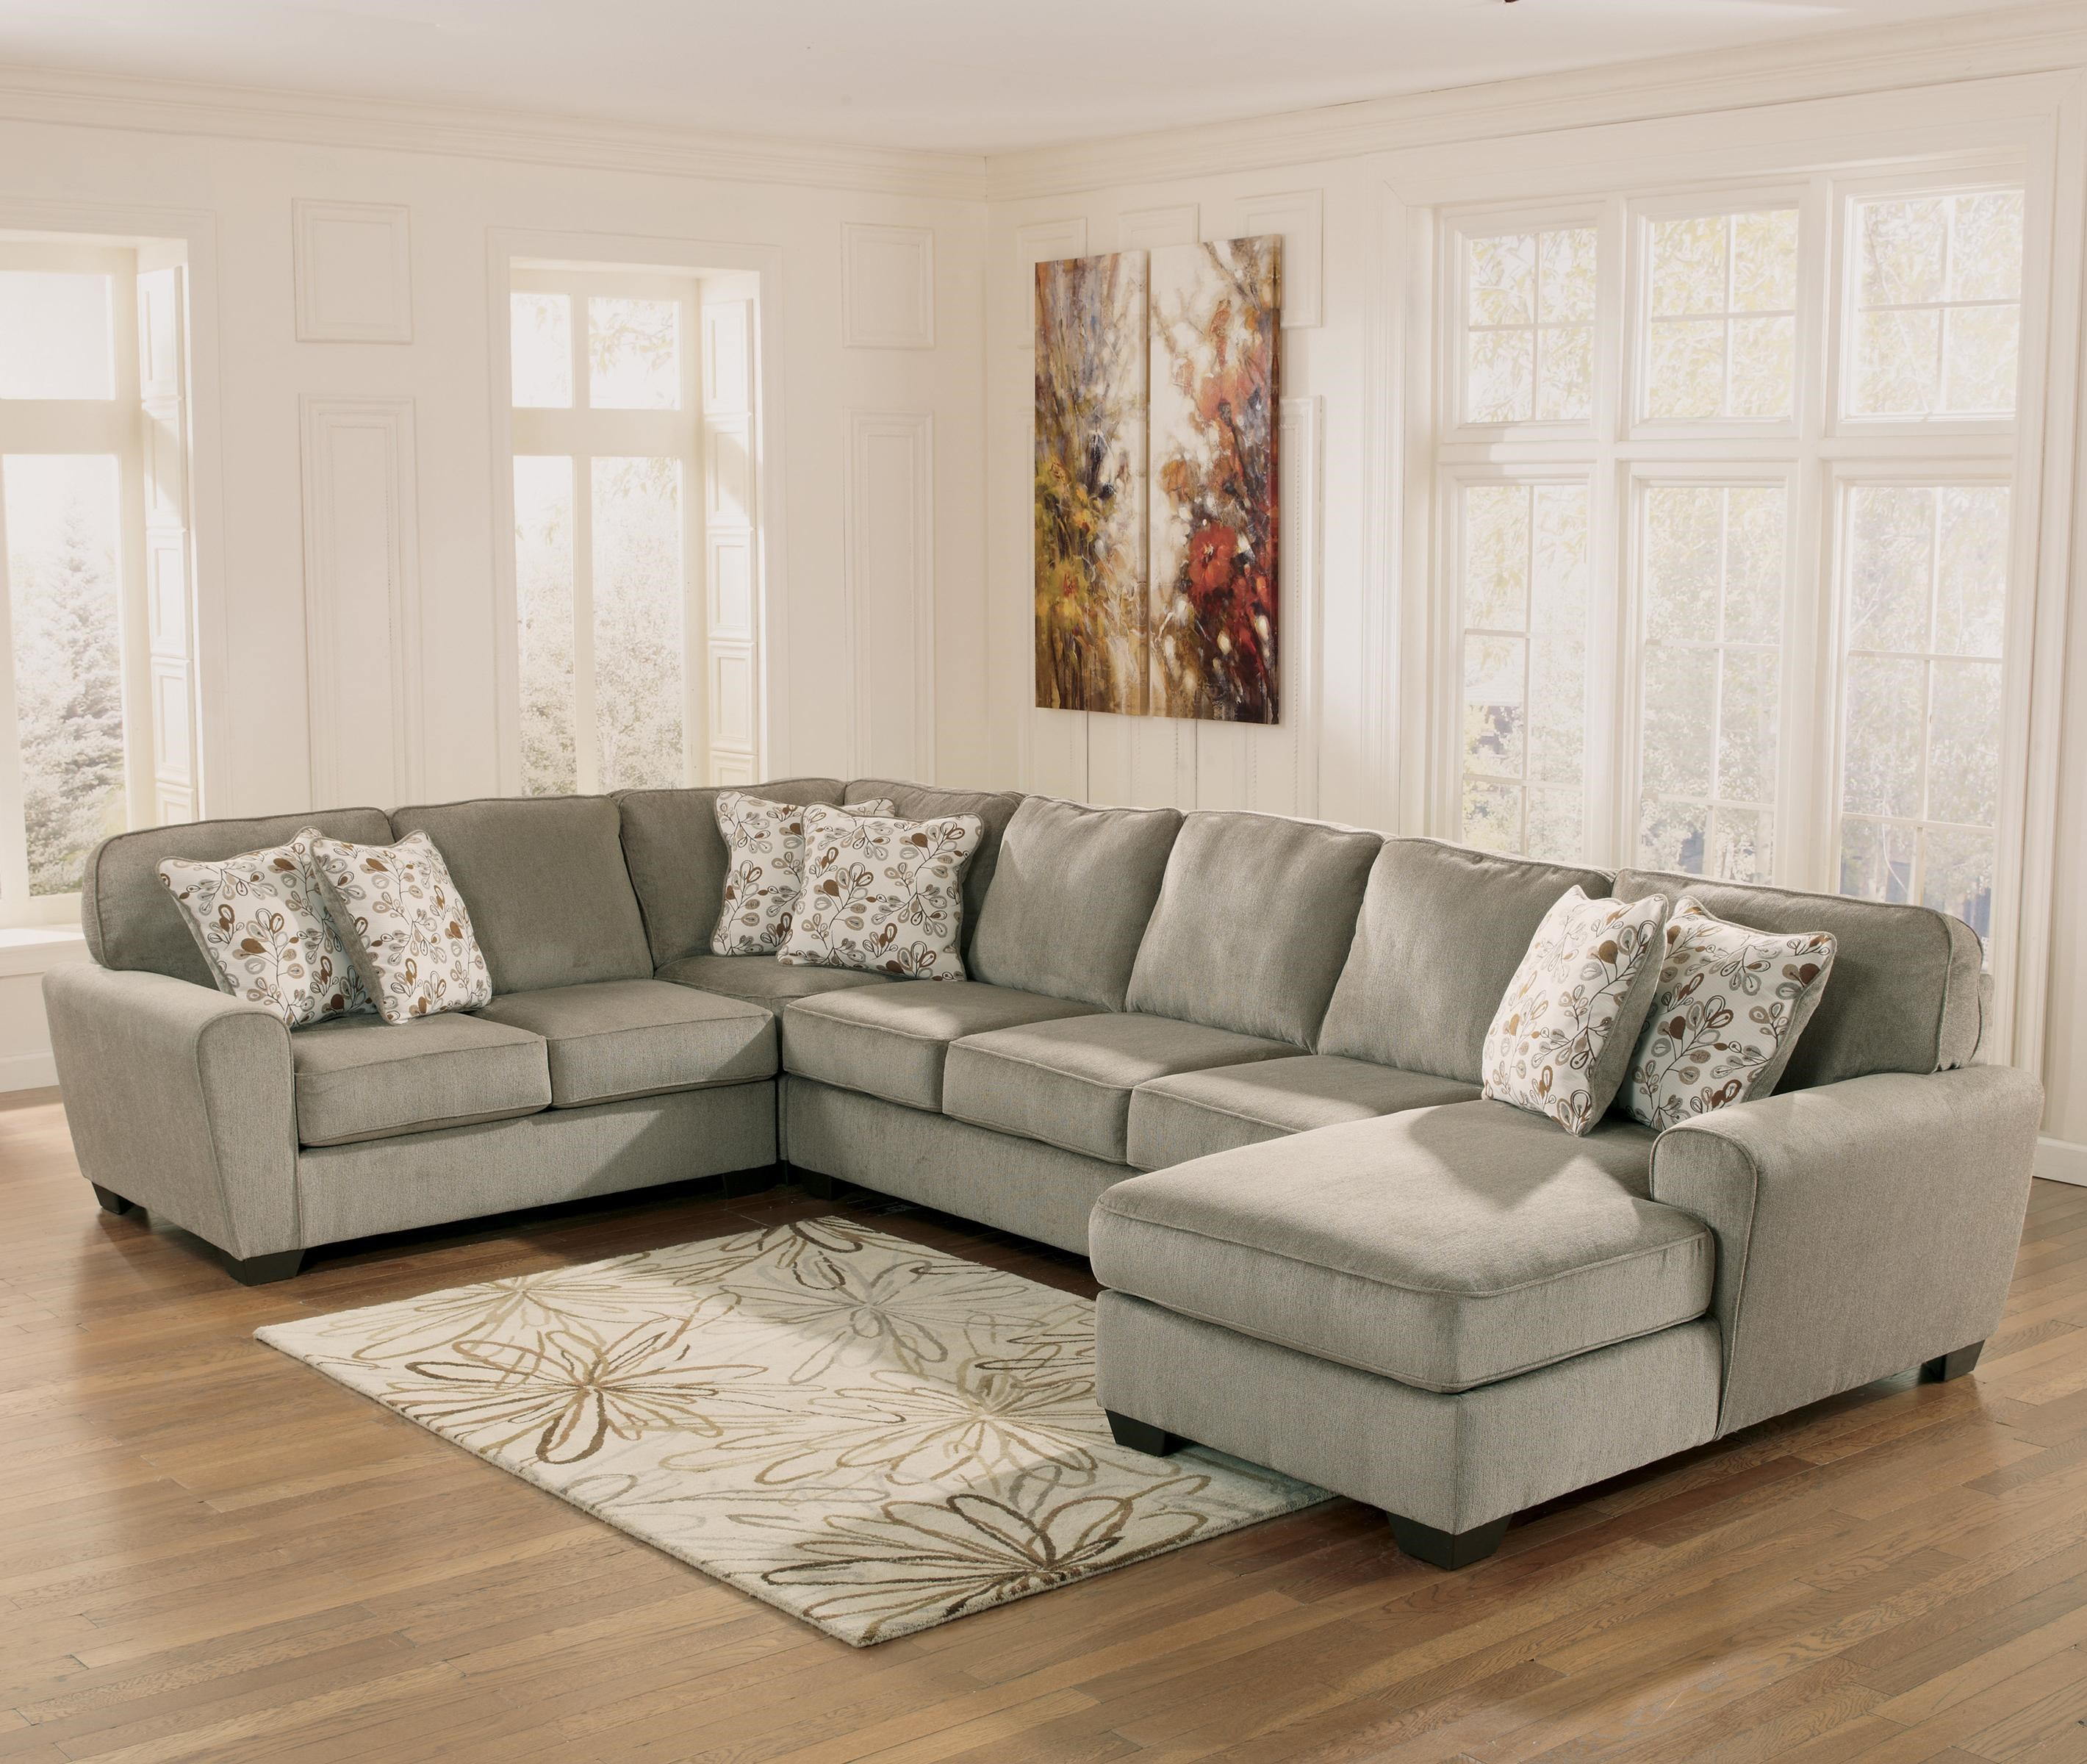 Ashley Furniture Patola Park   Patina4 Piece Sectional With Right Chaise ...